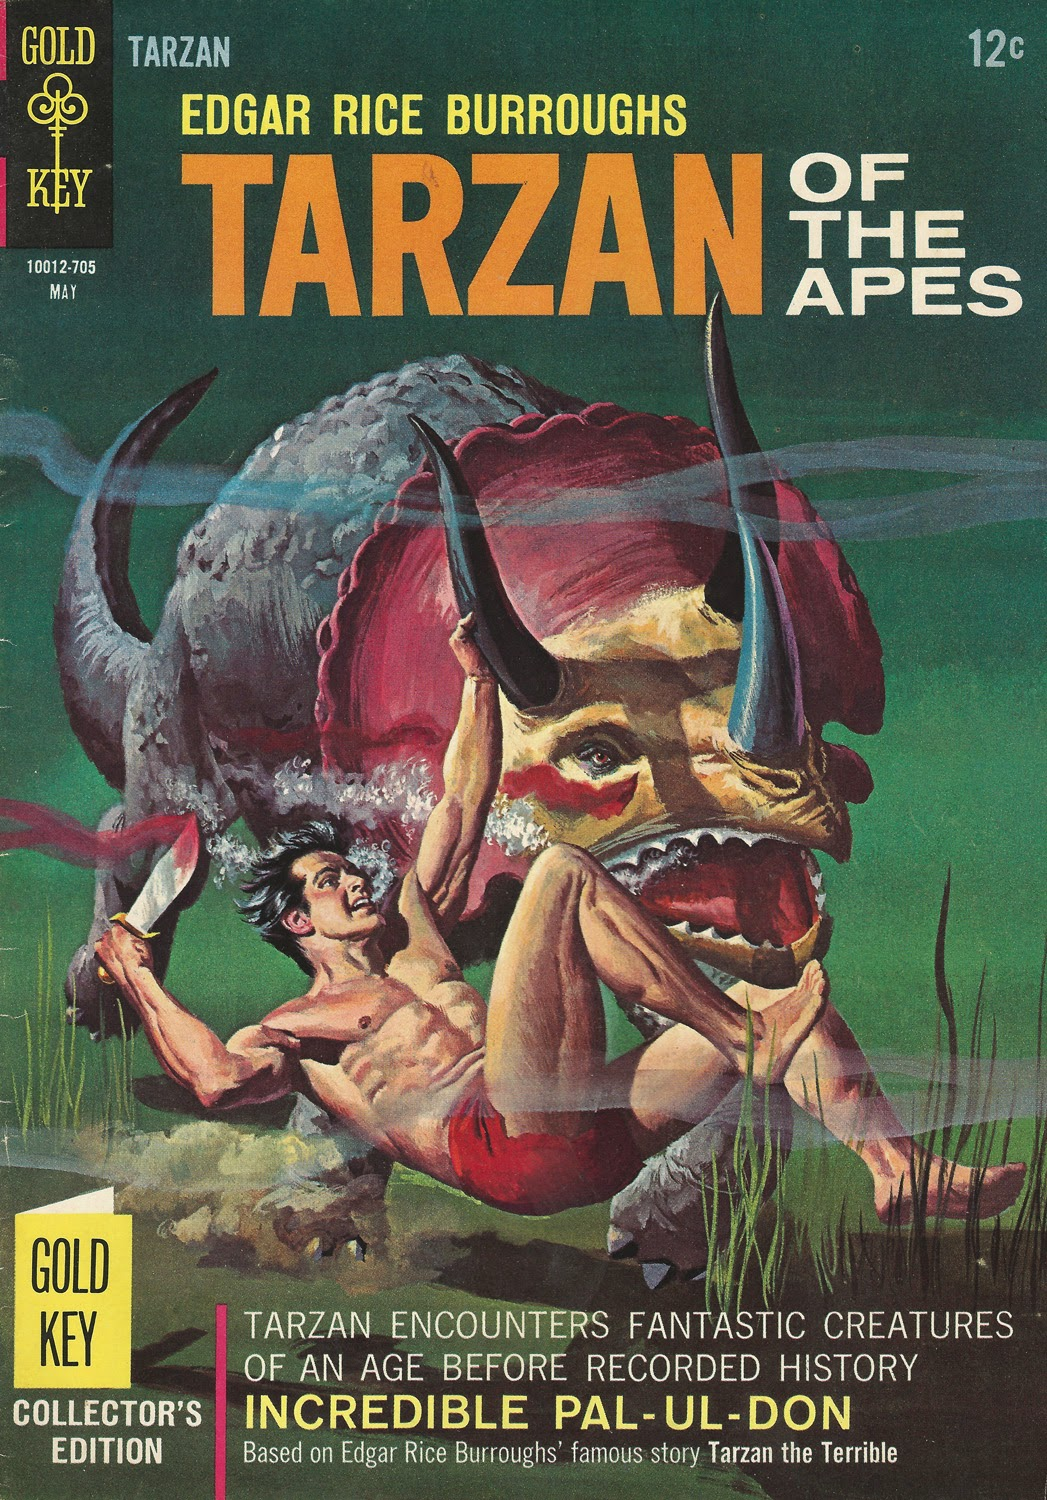 http://pulpcovers.com/incredible-pal-ul-don/